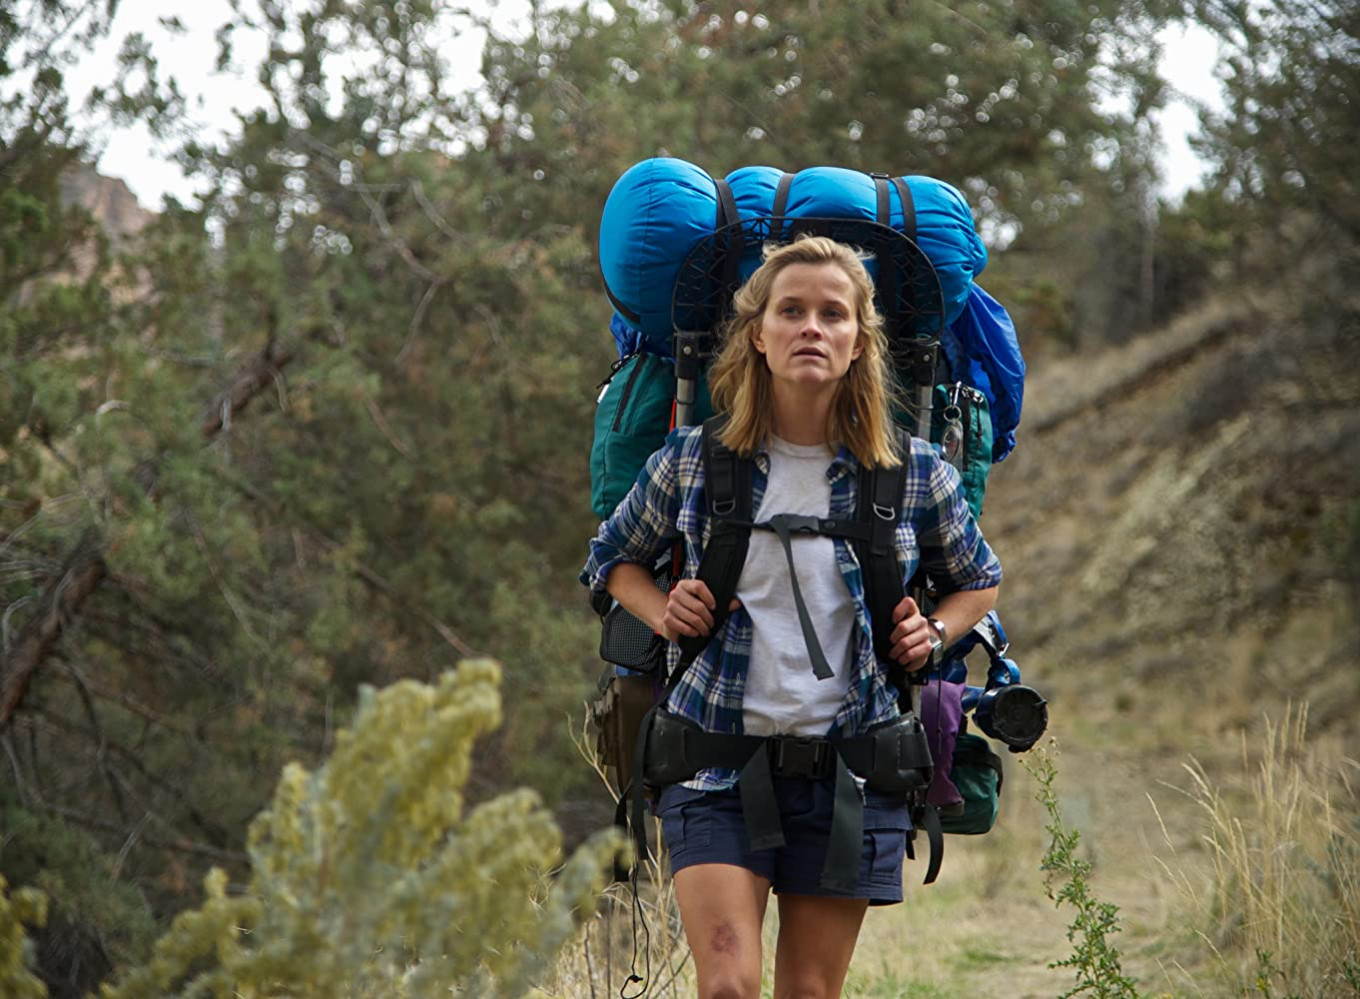 The best travel films for hikers and nature lovers to watch during self-quarantine